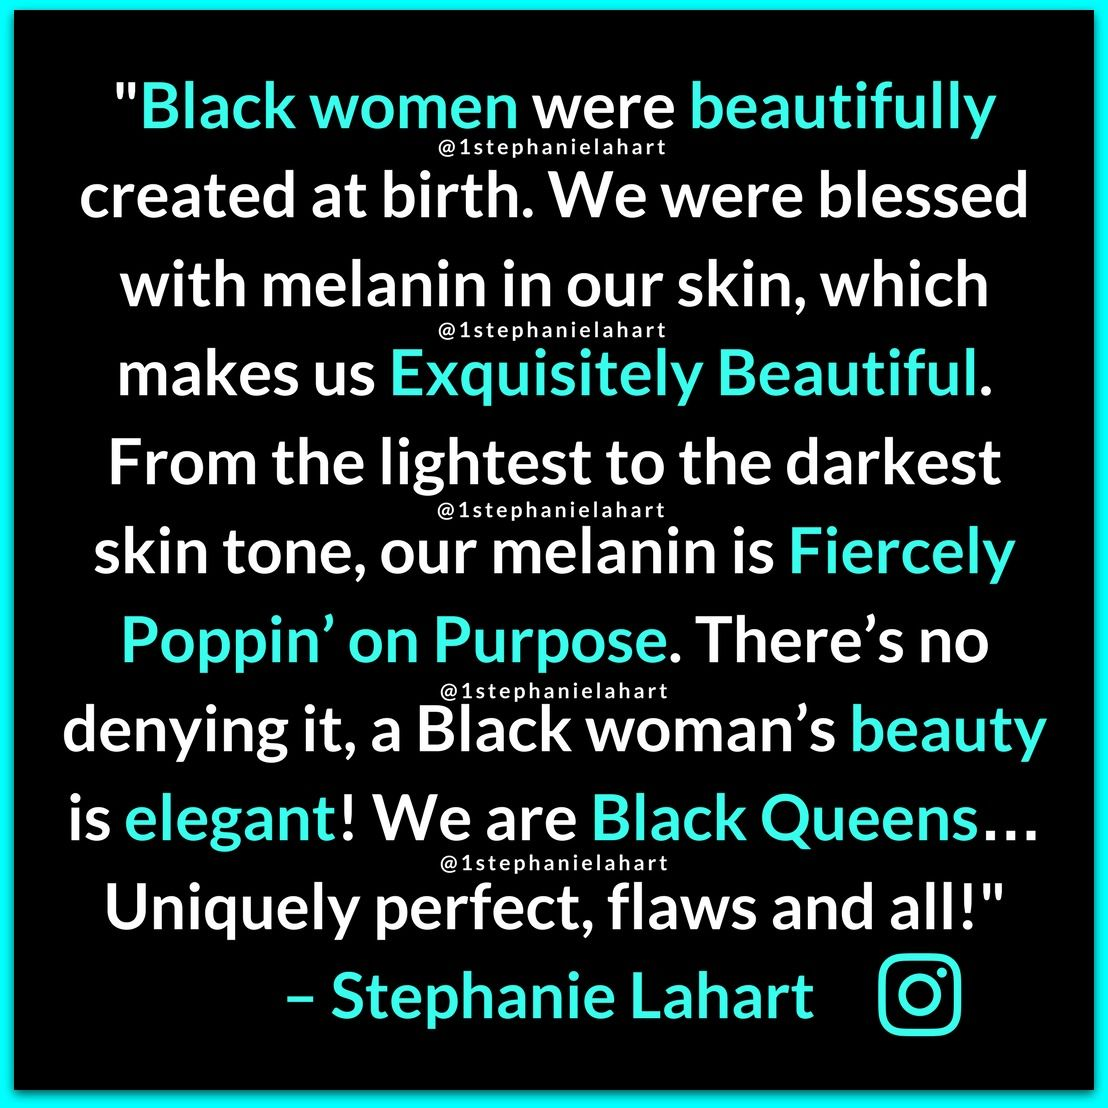 Quotes By Black Women Inspiring Black Woman Beauty Quotes Black Queena Quote That